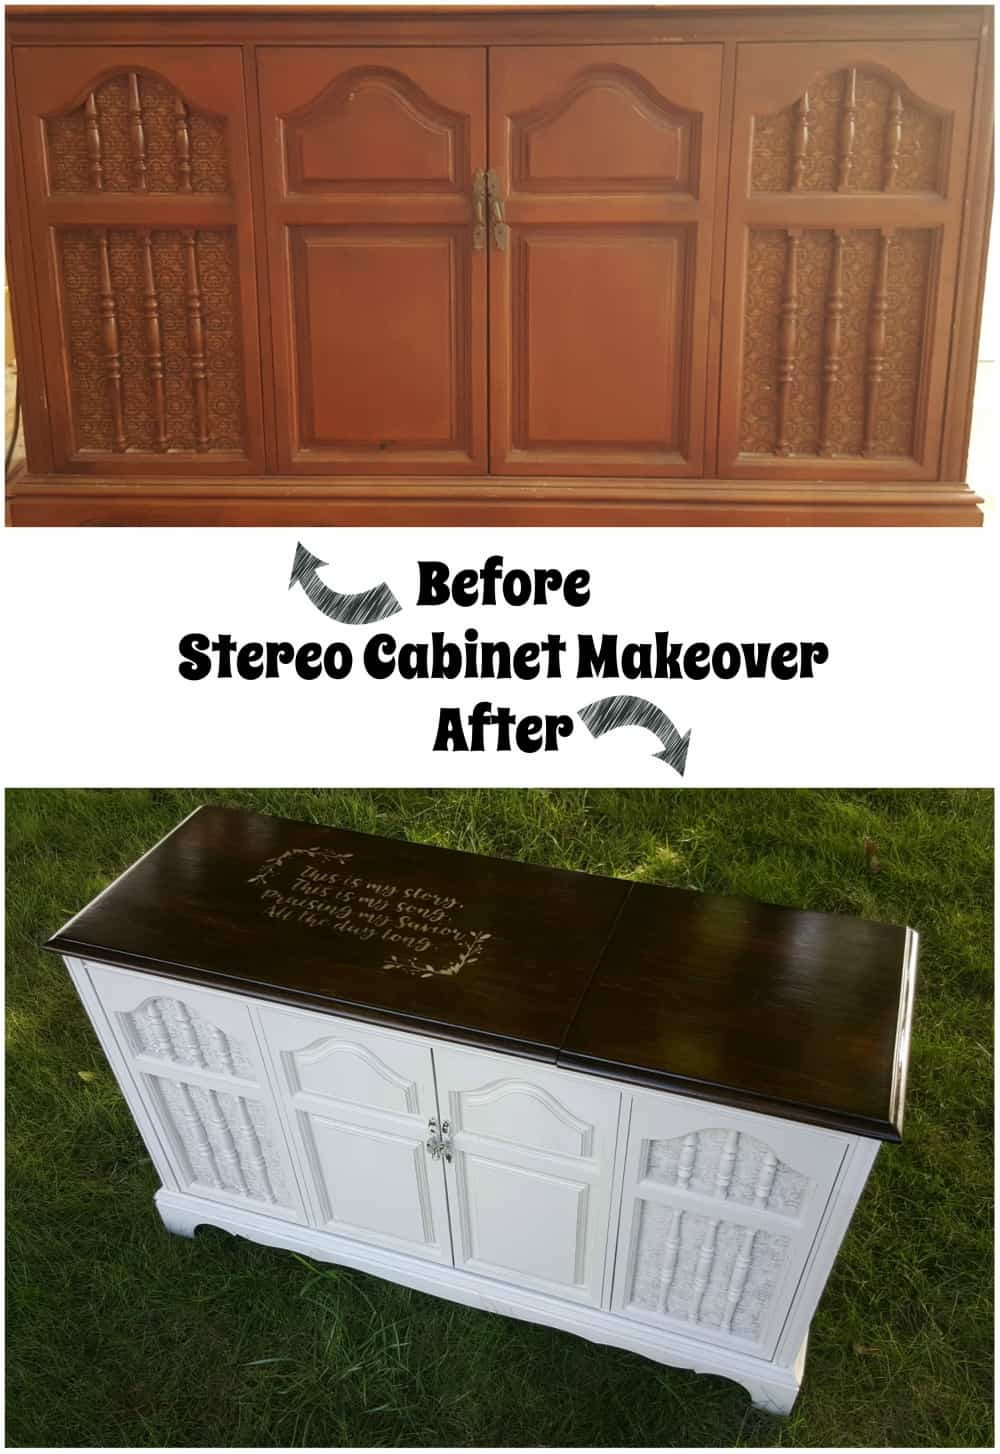 This stereo cabinet was refinished to give a vintage piece a beautiful makeover using a stencil, stain, and a little paint